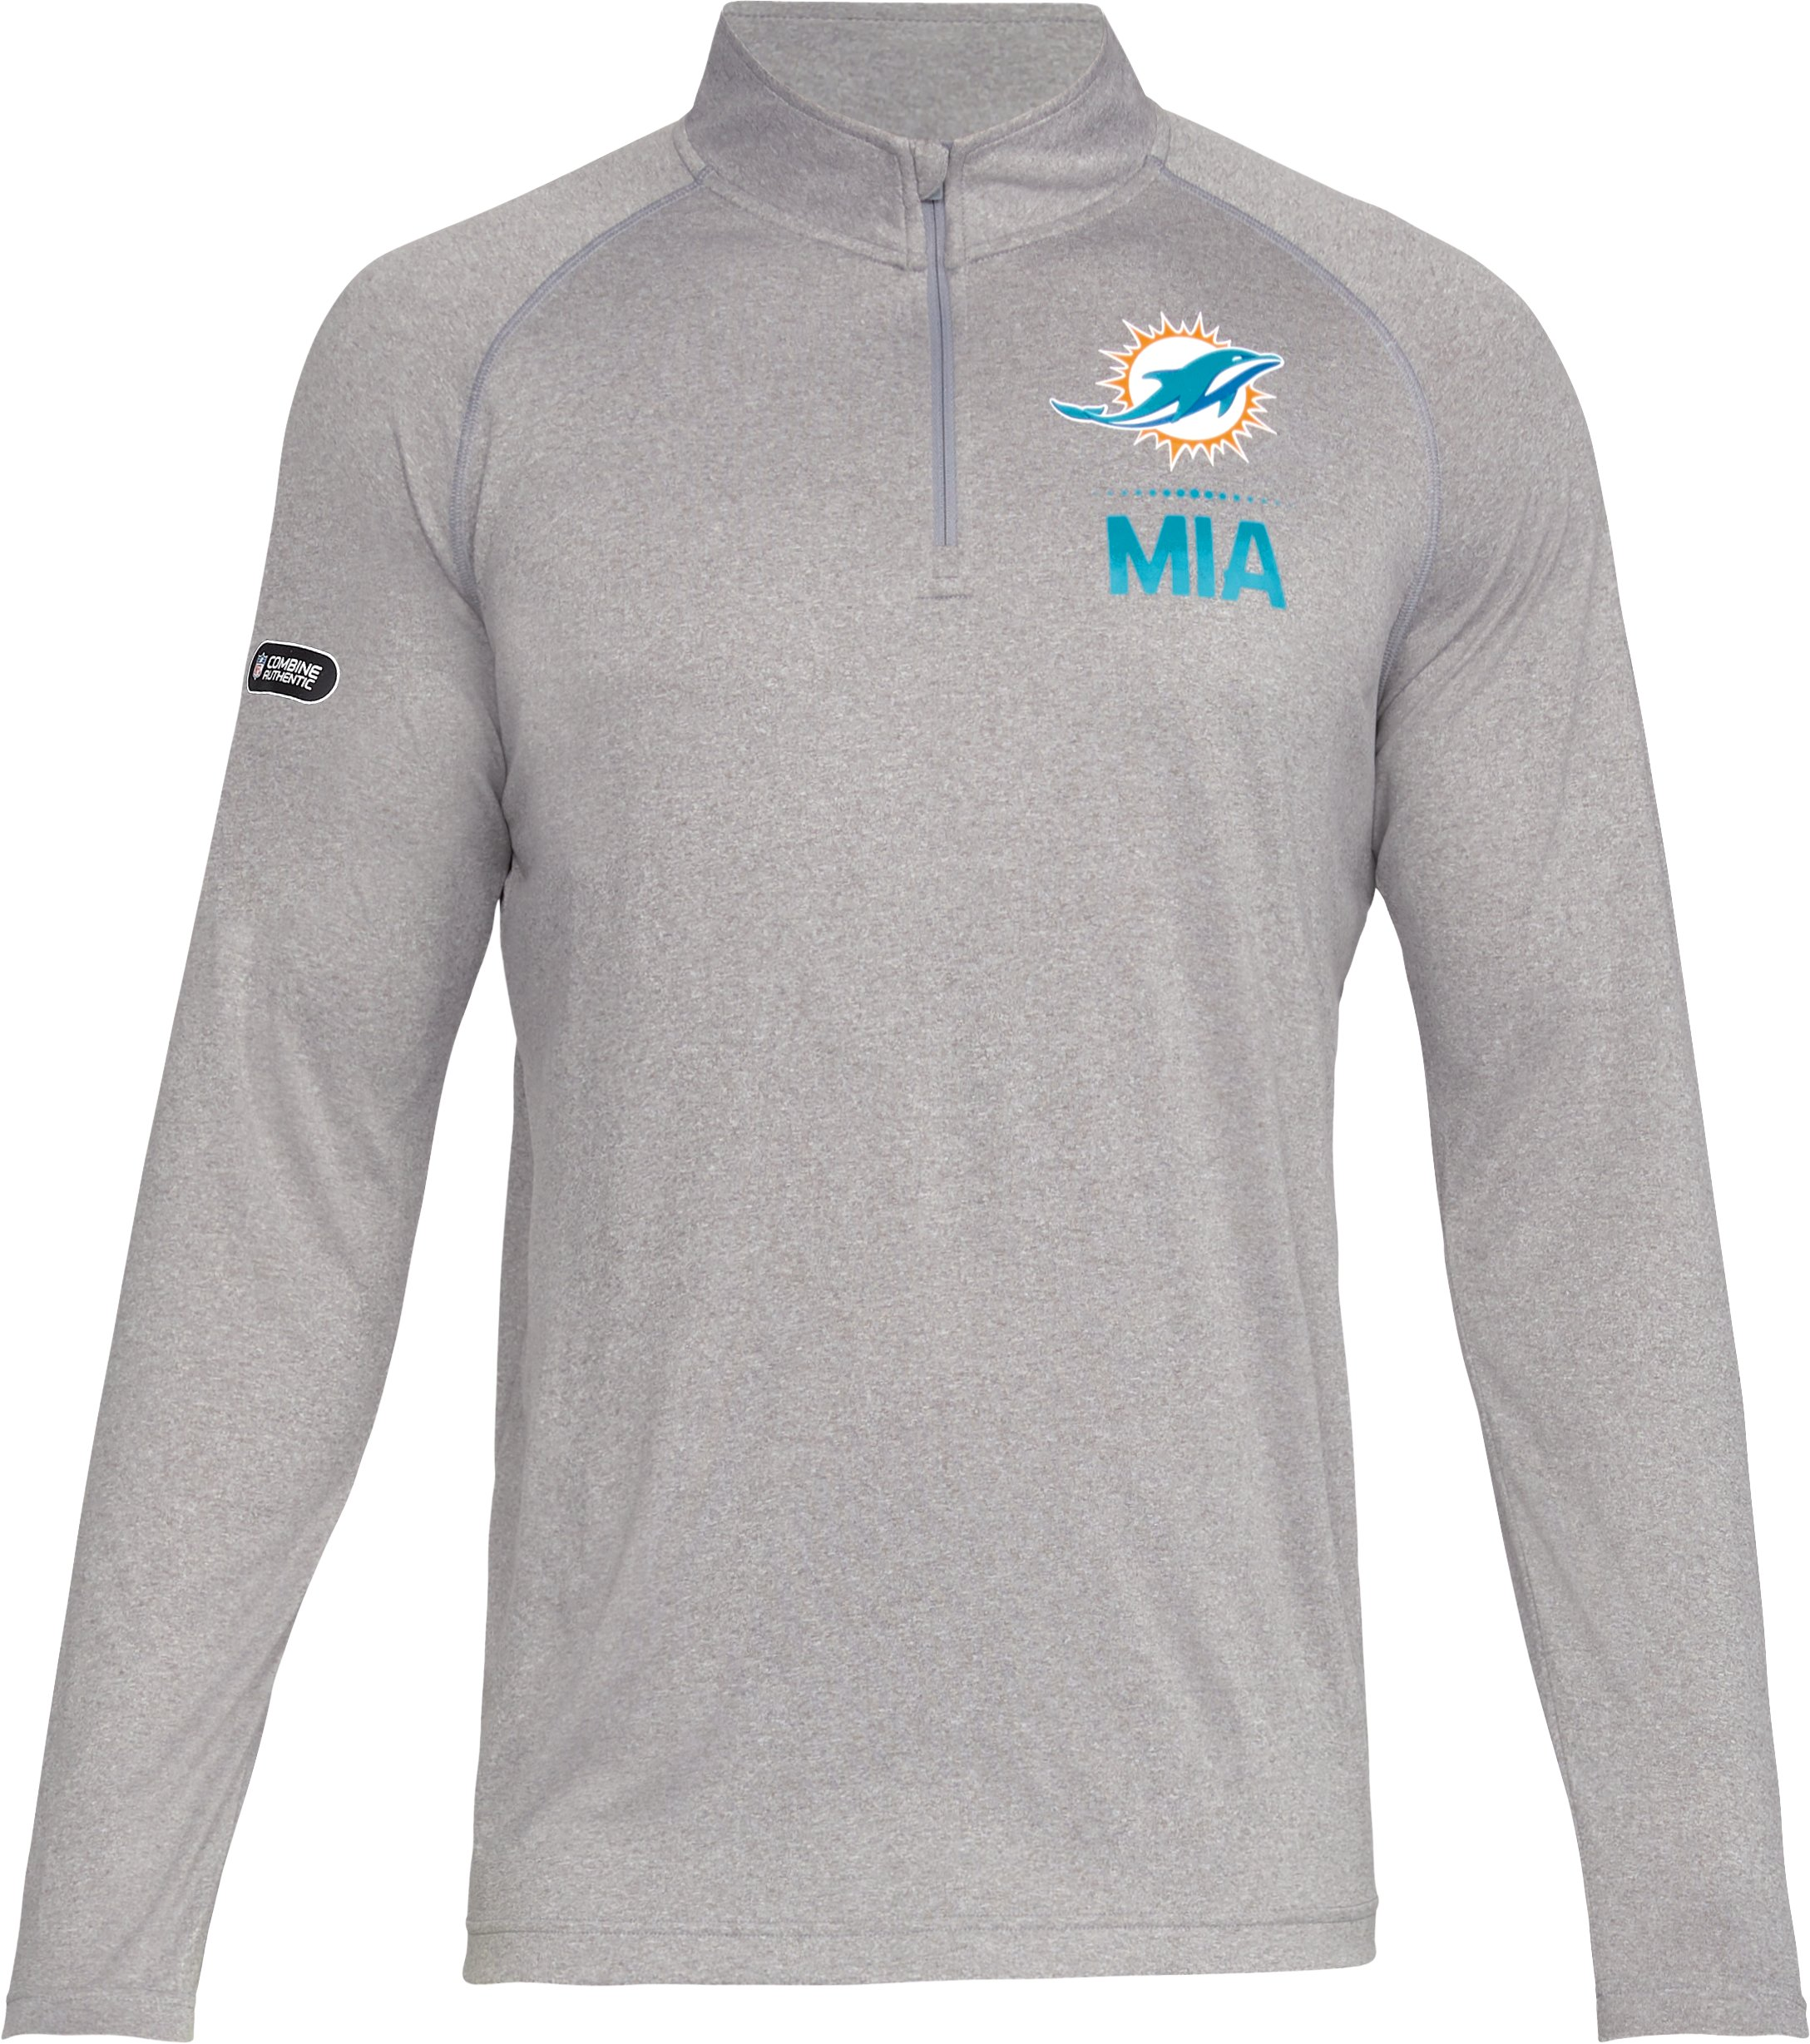 Men's NFL Combine Authentic UA Tech™ ¼ Zip Long Sleeve Shirt, NFL_Miami Dolphins_TGH,